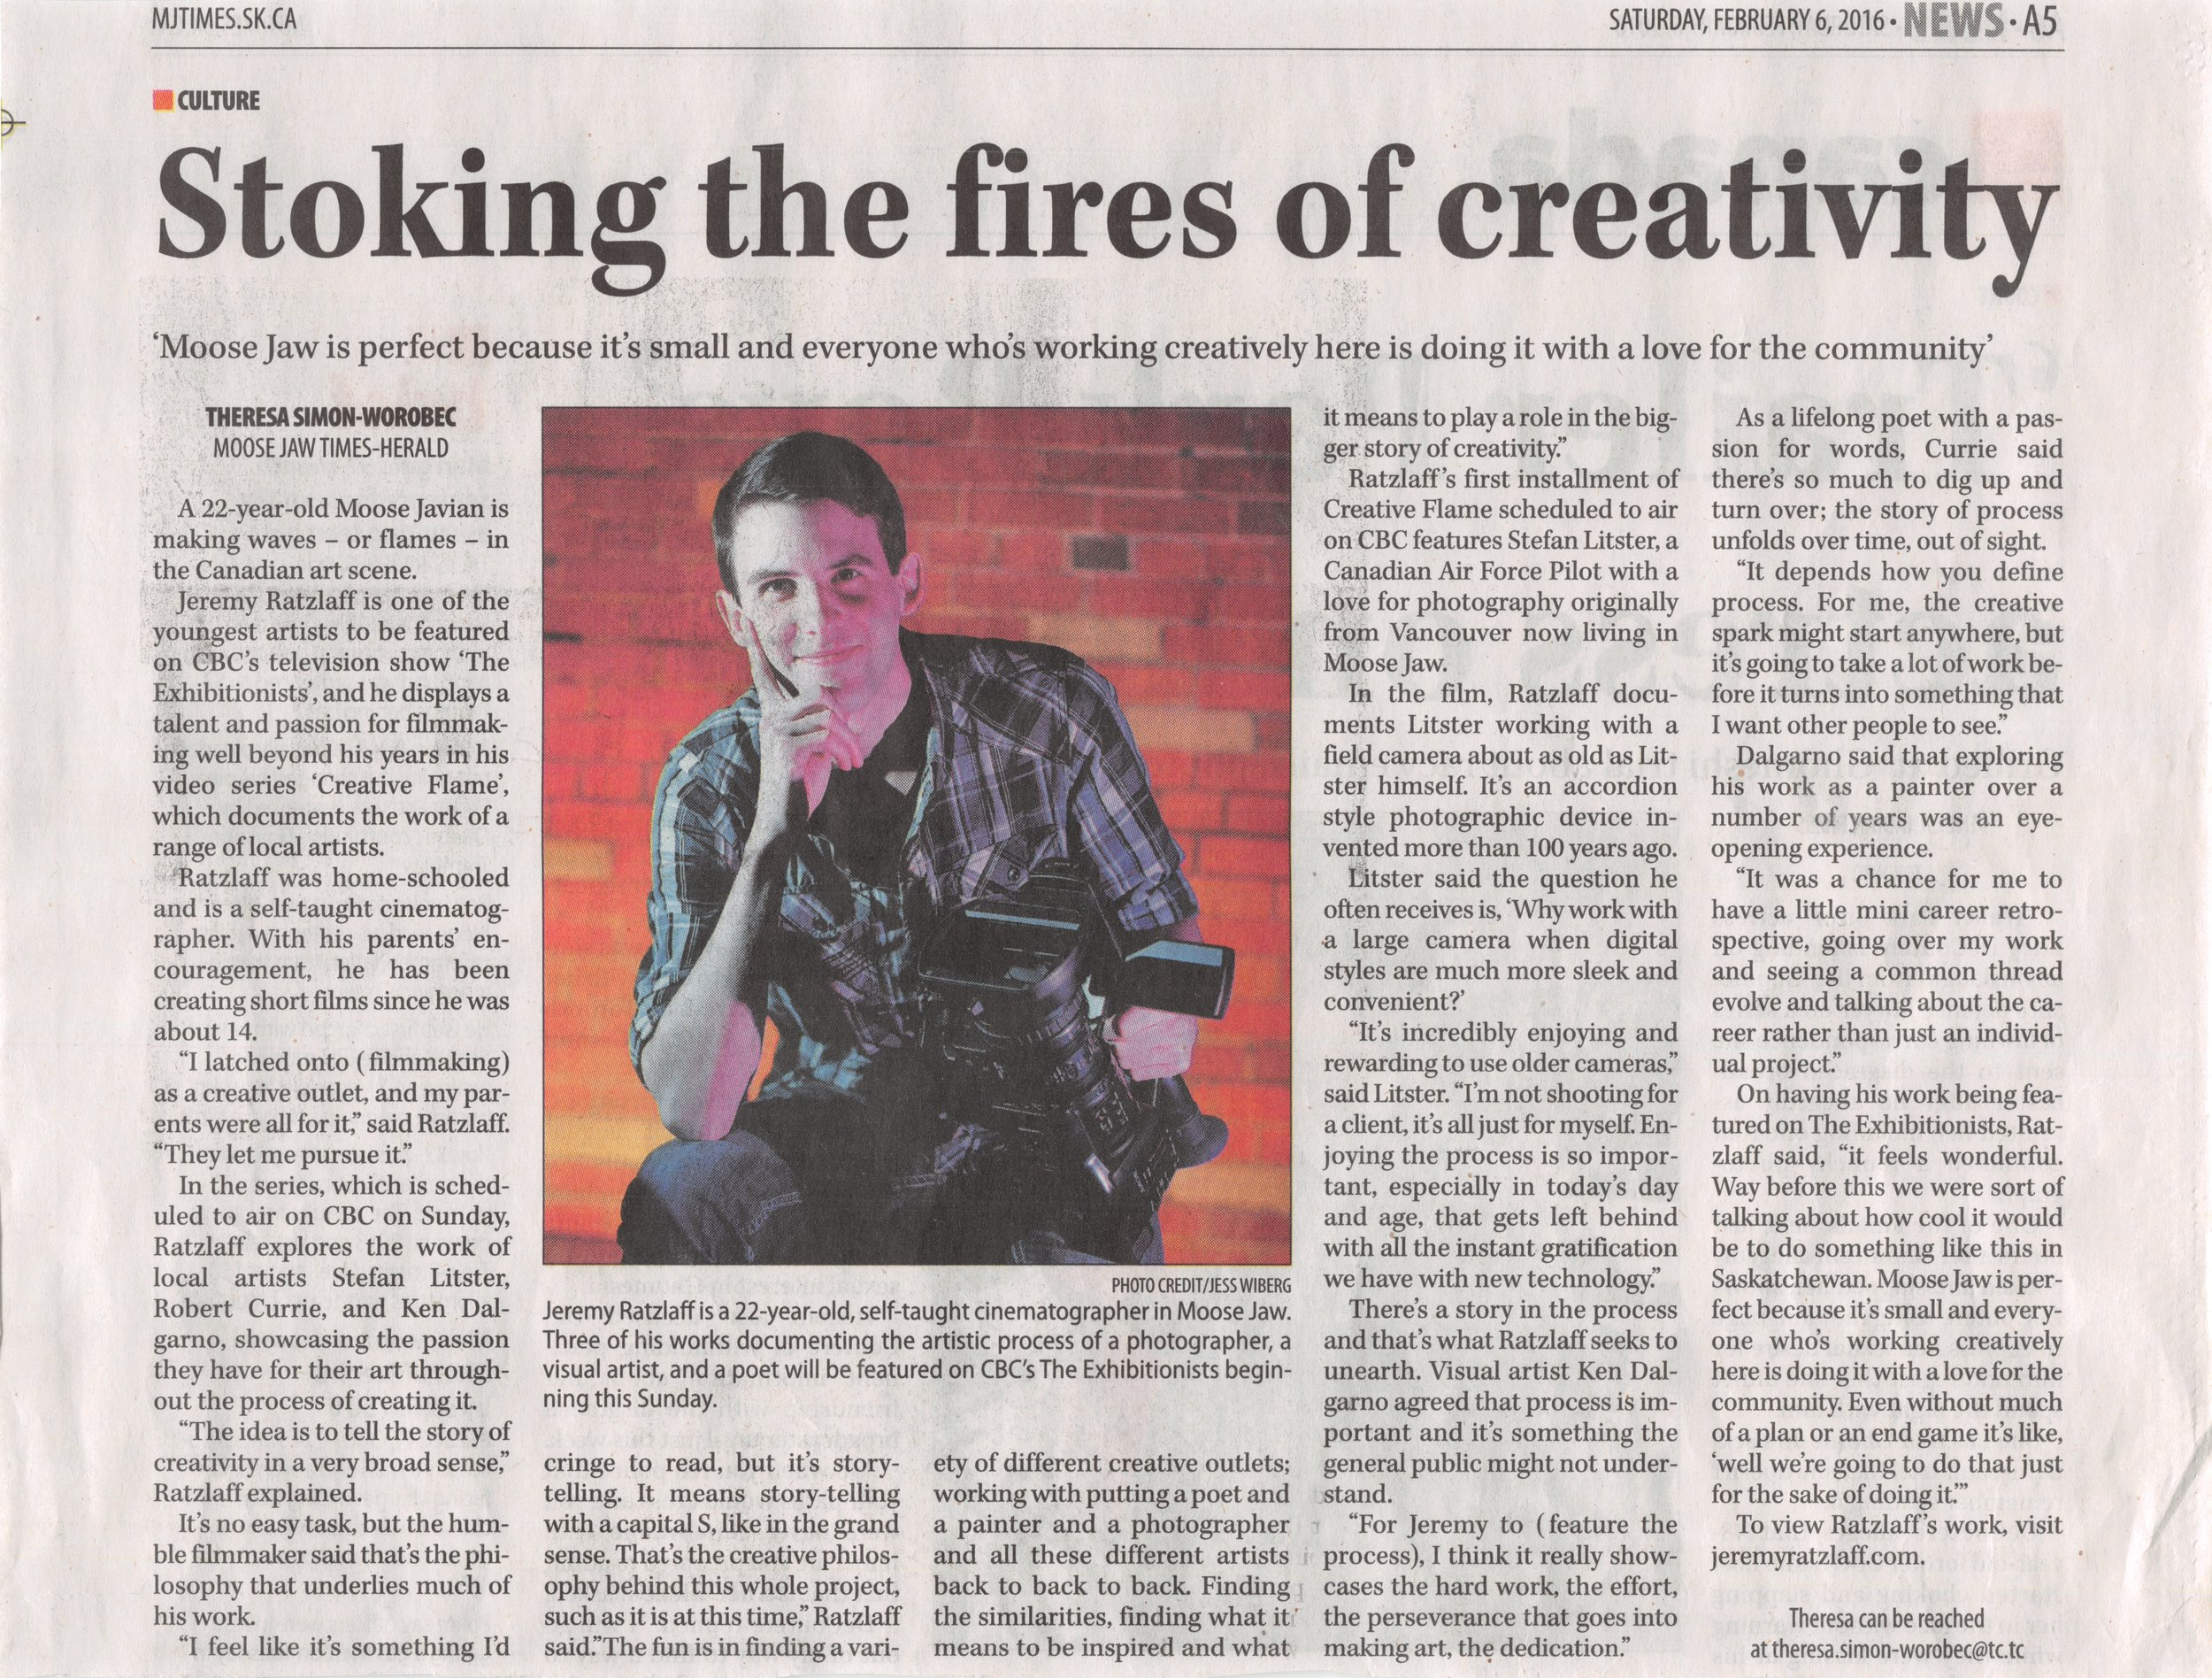 Stoking the fires of creativity